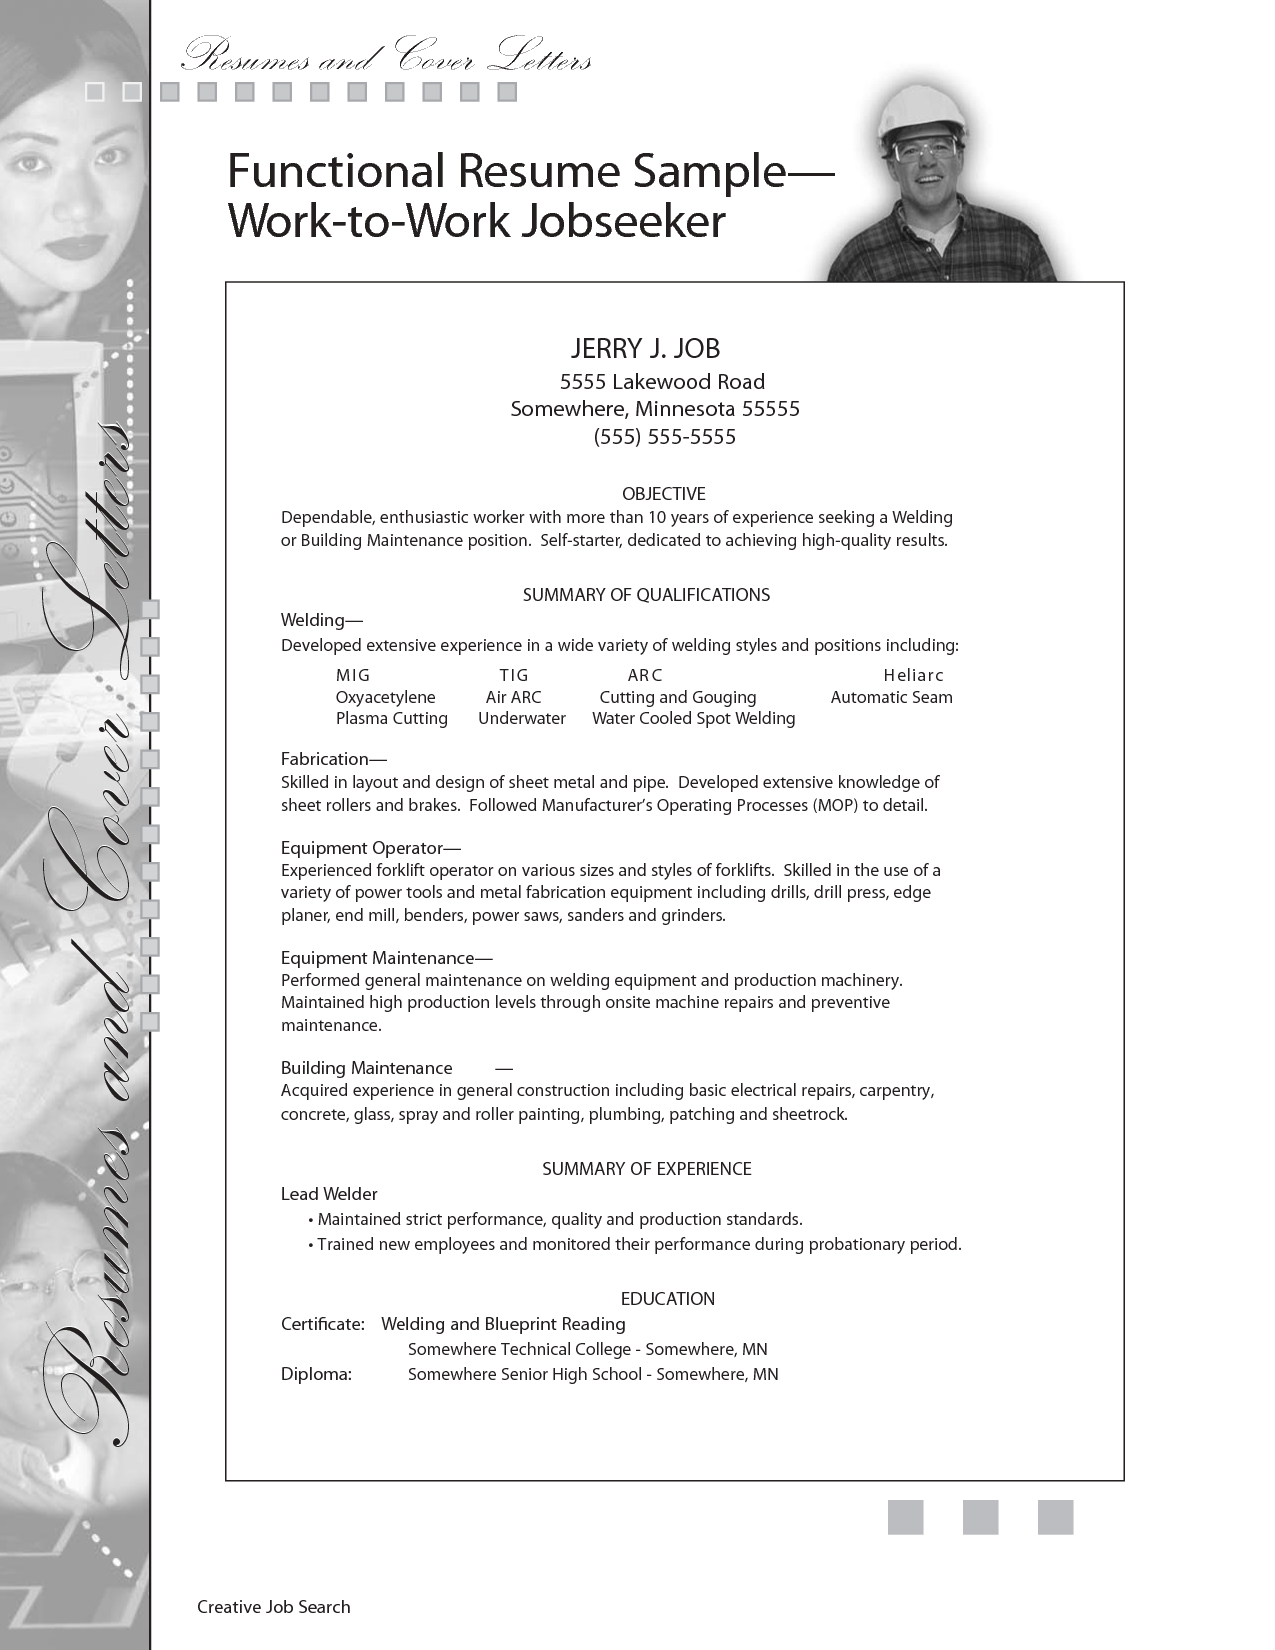 Building Maintenance Engineer Resume Sample Sample Resume For Welding Position Sample Building